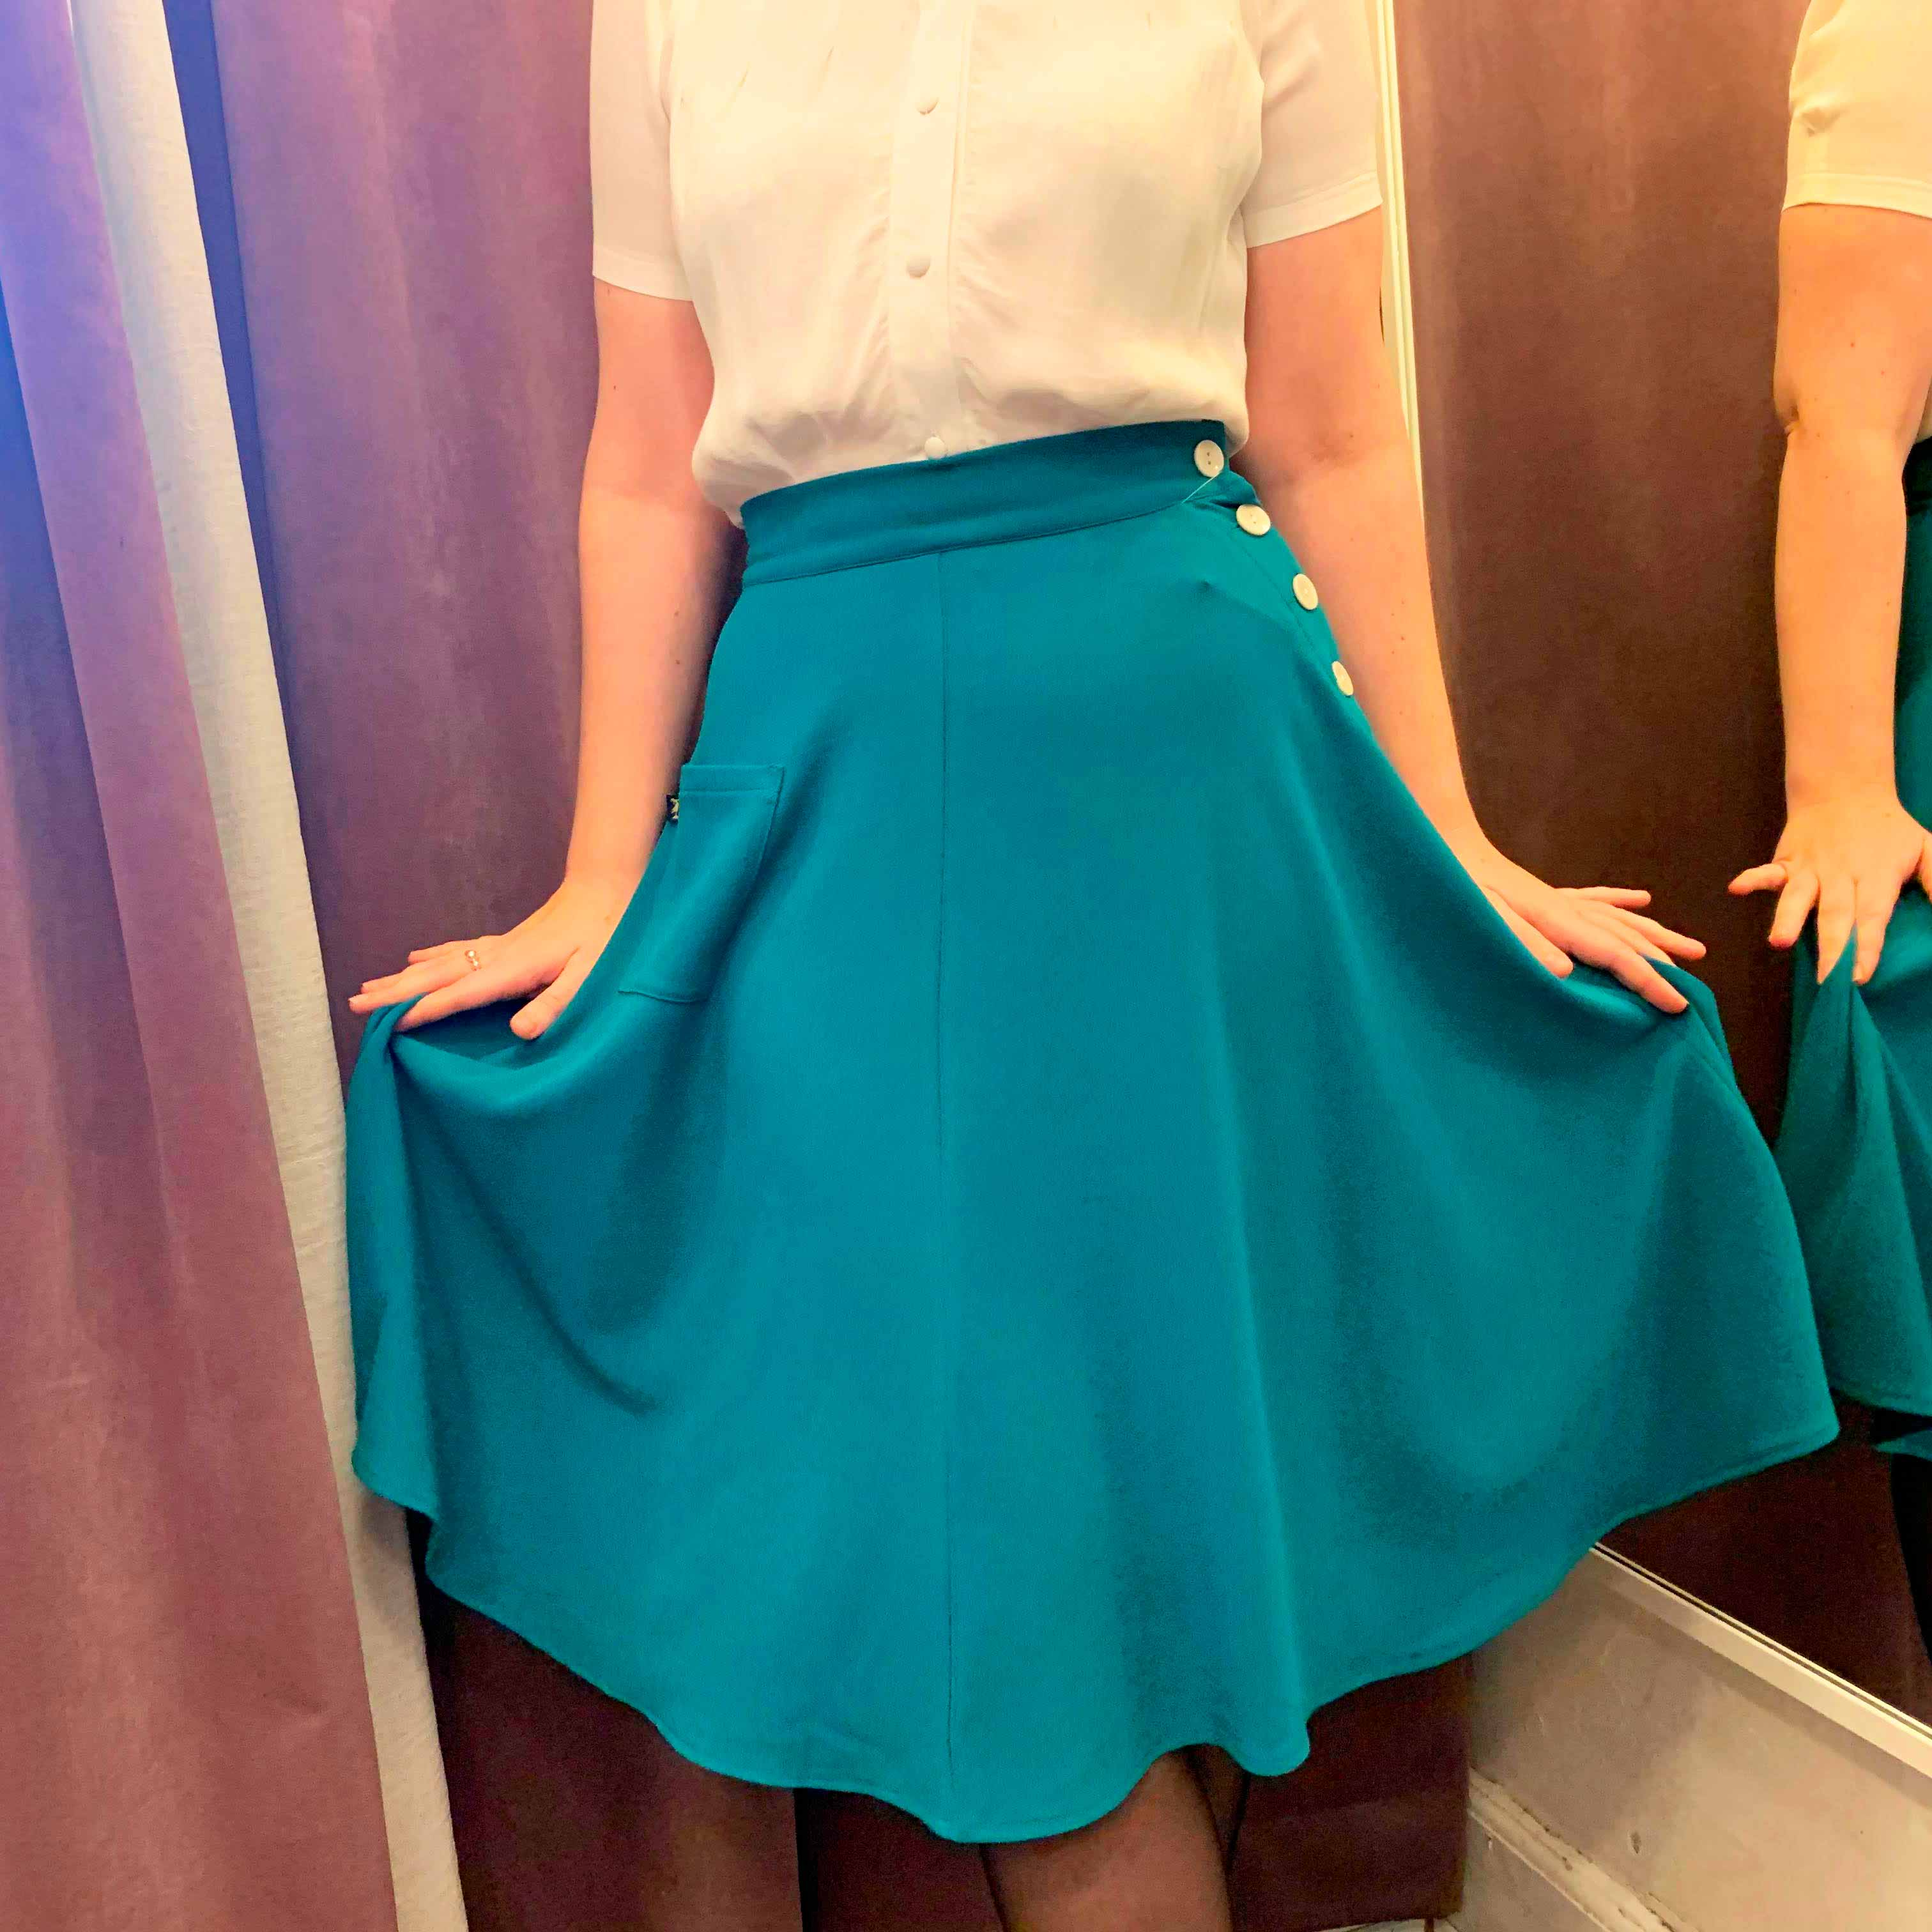 Turquoise aline skirt with buttons in retro style